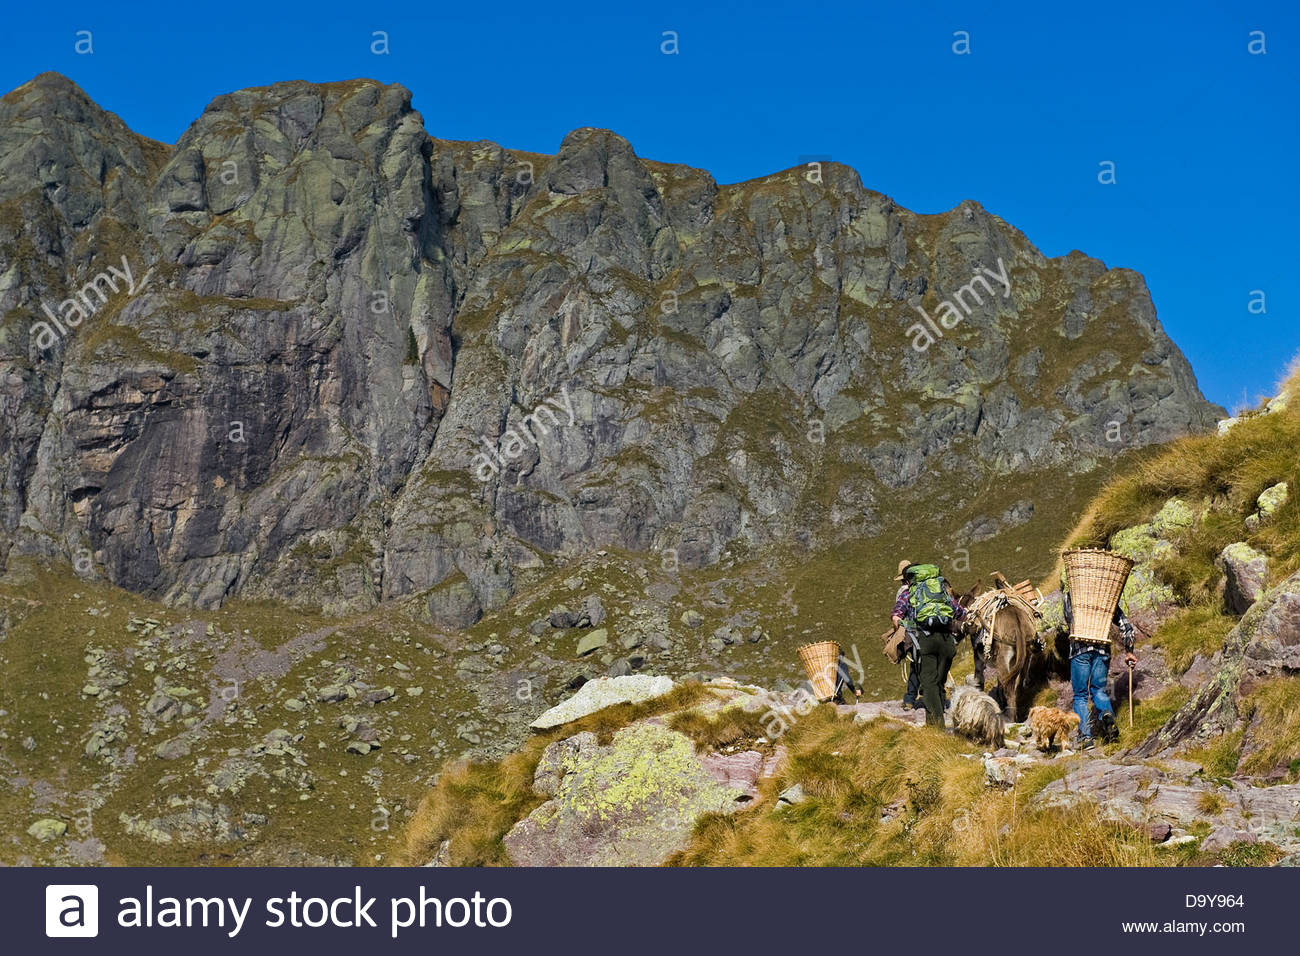 The rebels in the mountains,Brembana valley,Lombardy,Italy - Stock Image